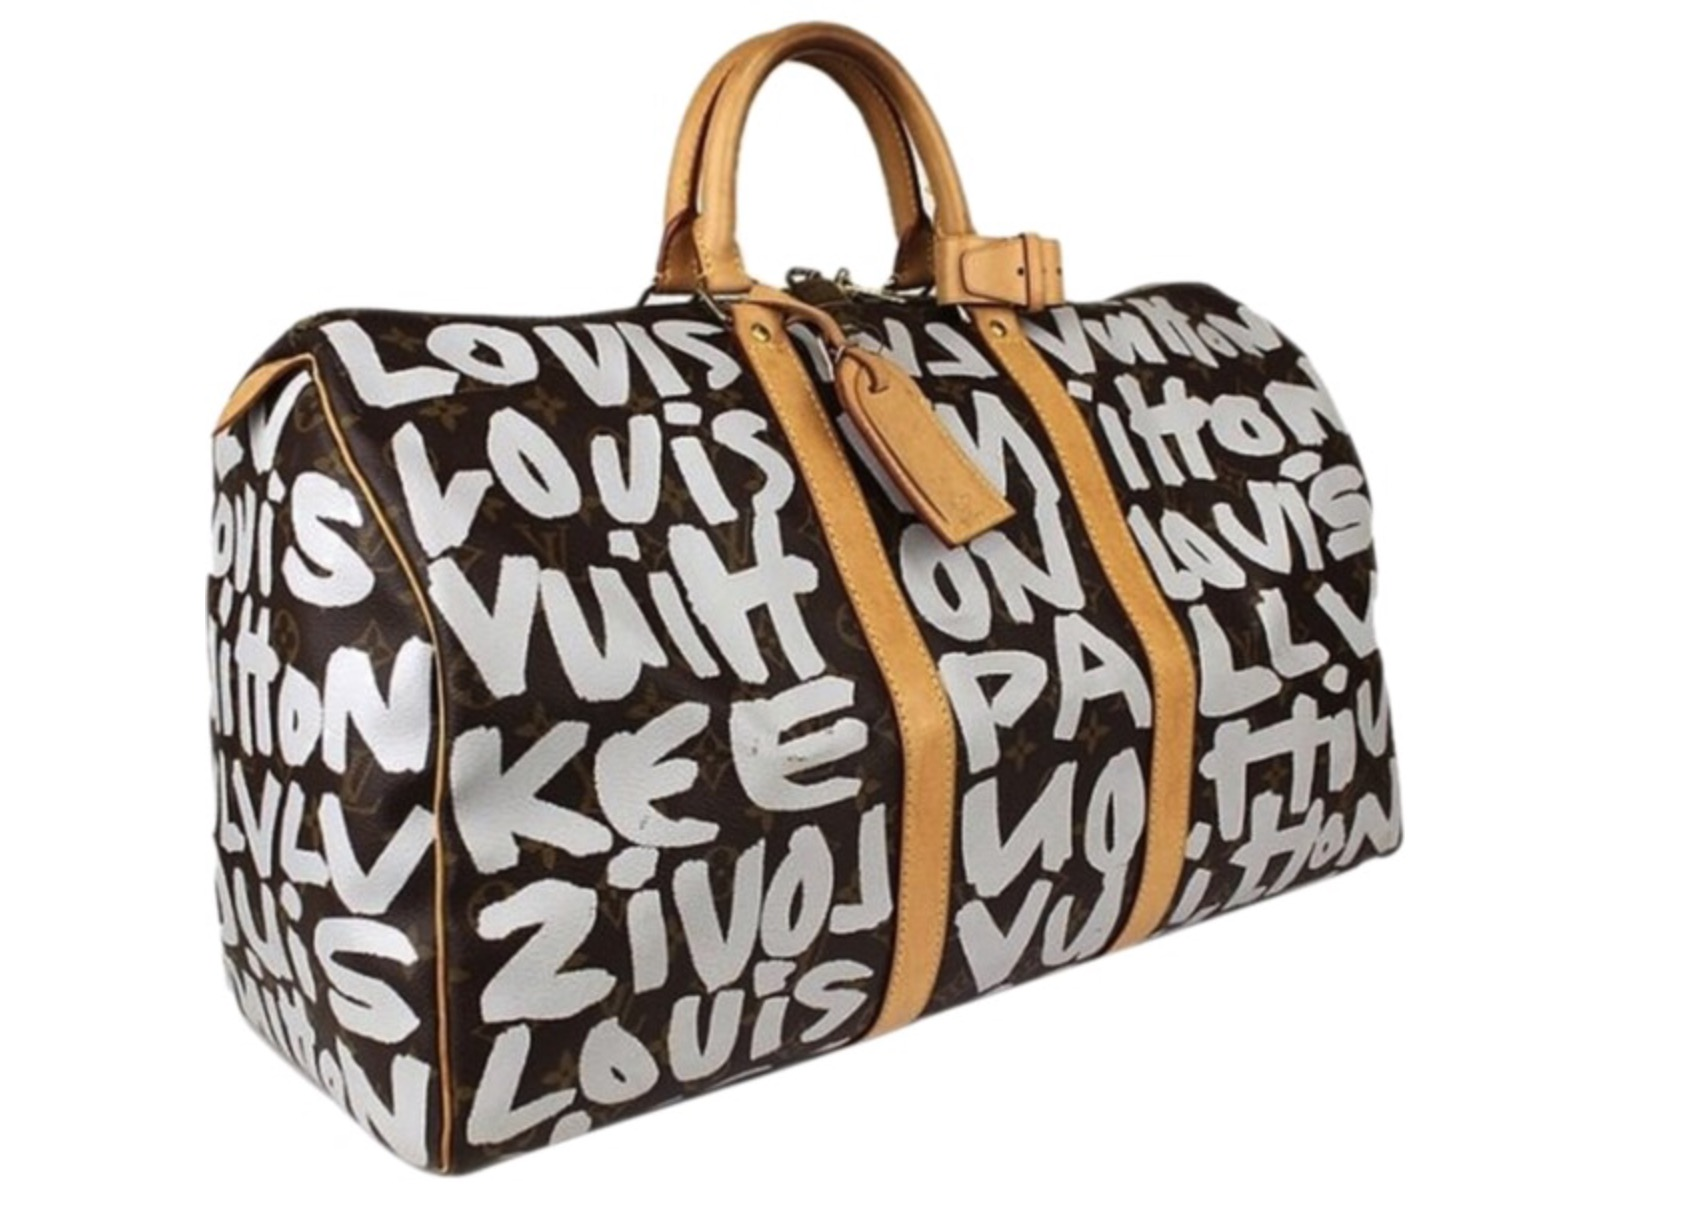 Louis Vuitton Keepall 50 Luggage Carry On - $1,900